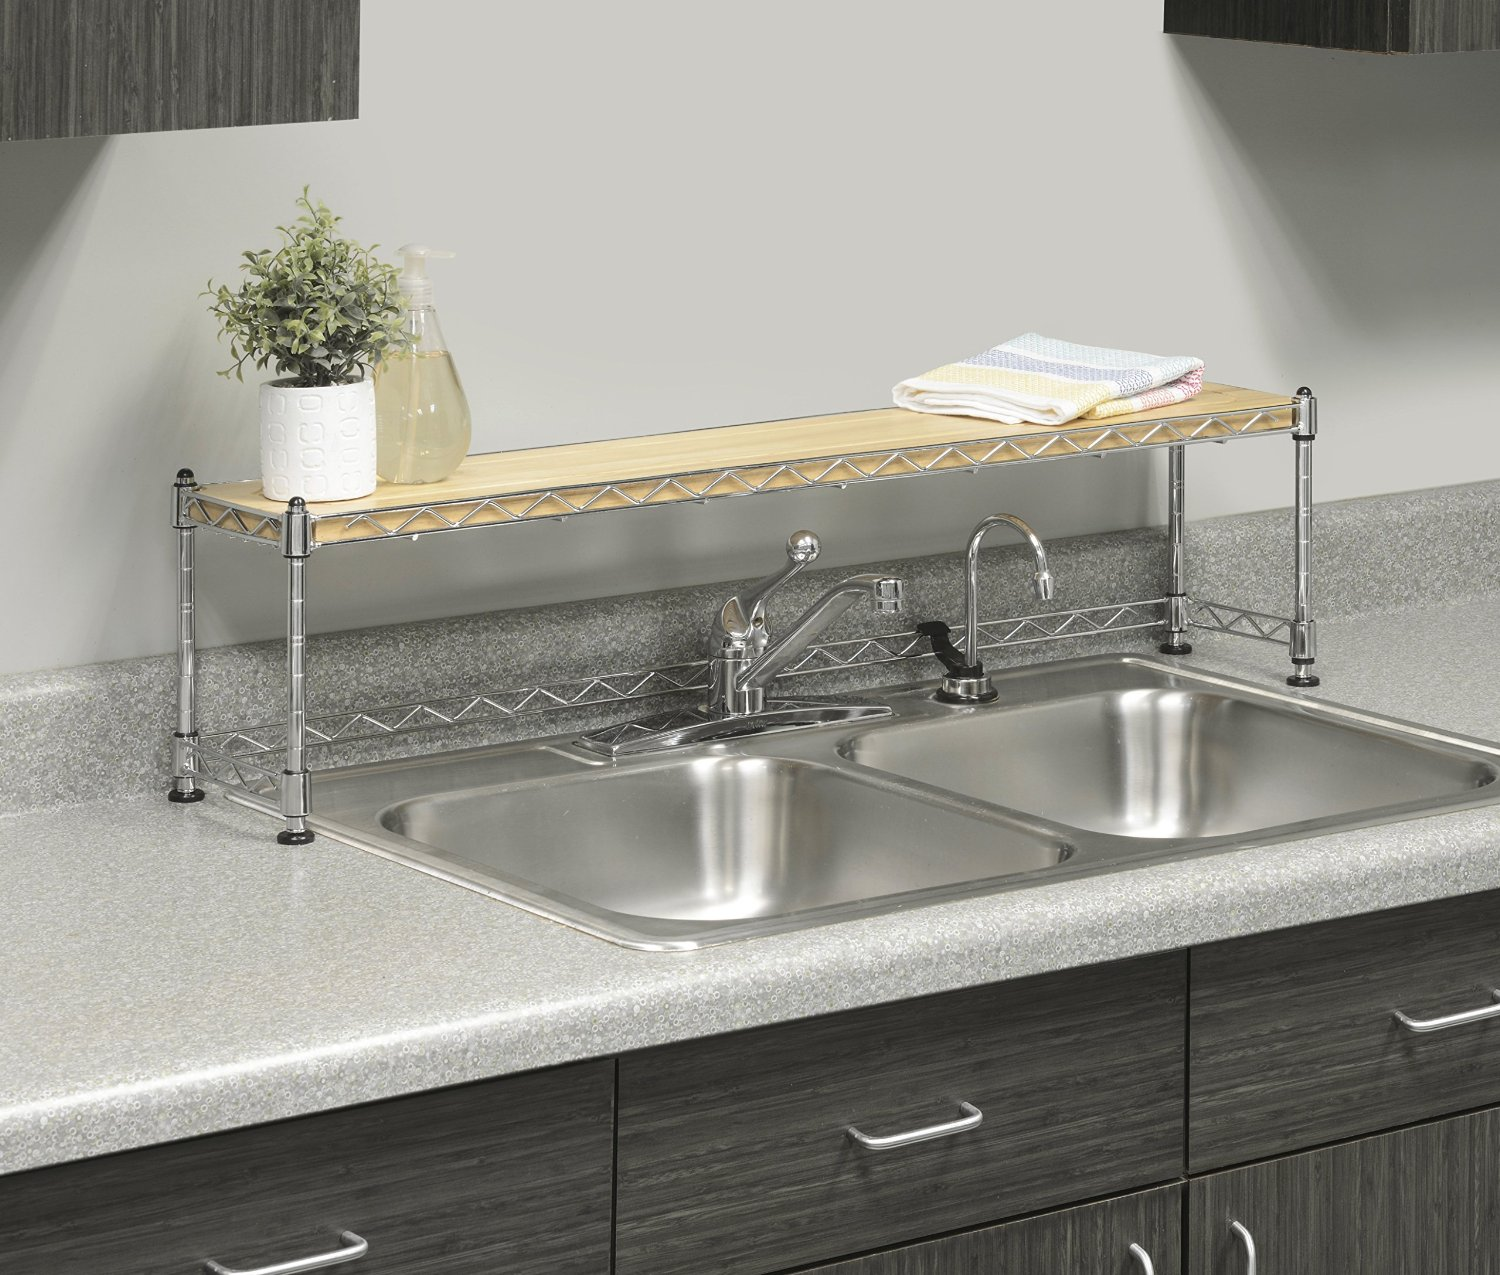 kitchen sink rack metal cabinet 11 must have accesories and products to organize my accessories www onecrazyhouse com